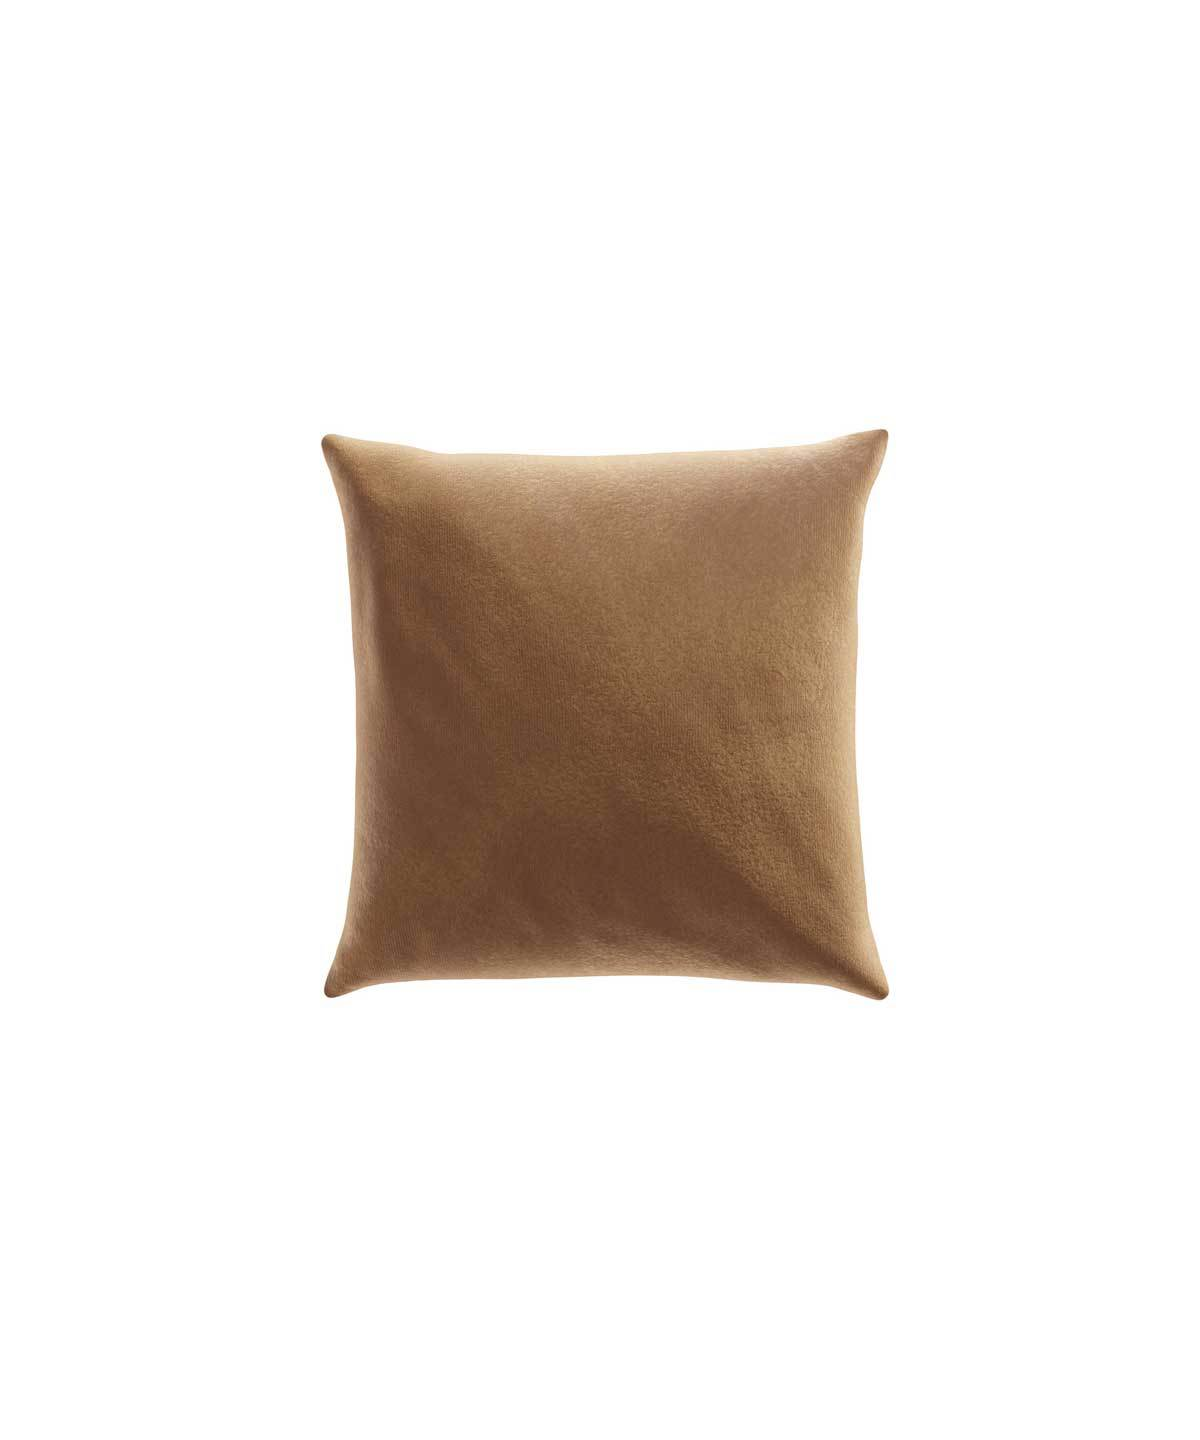 "18"" Throw Pillow in Sienna by TRNK 